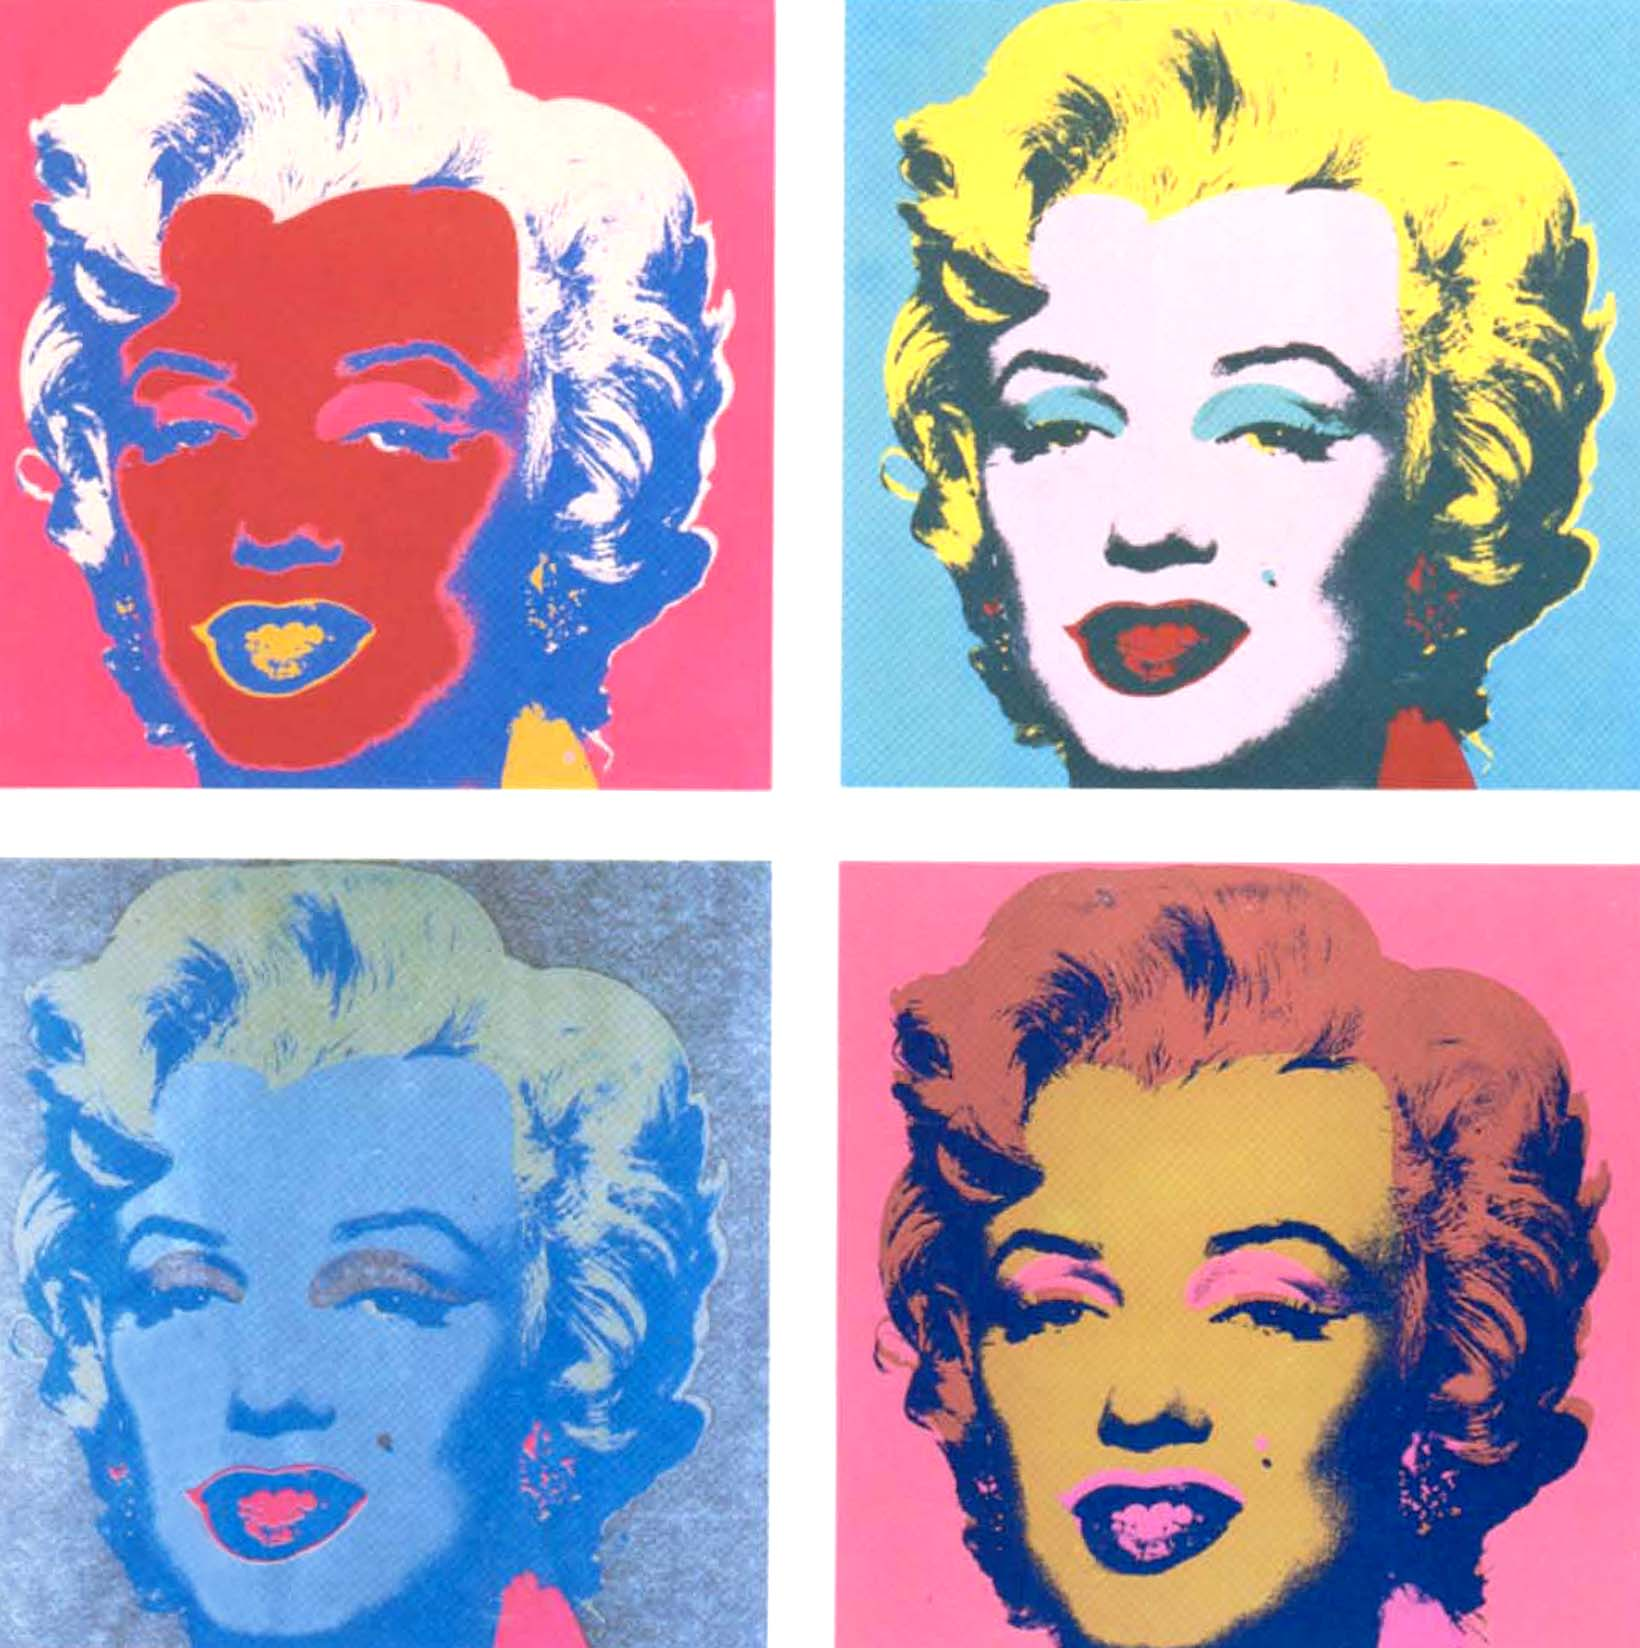 Marilyn Pop Art Andy Warhol Andy Warhol Style Gallery 7 Digital Studio